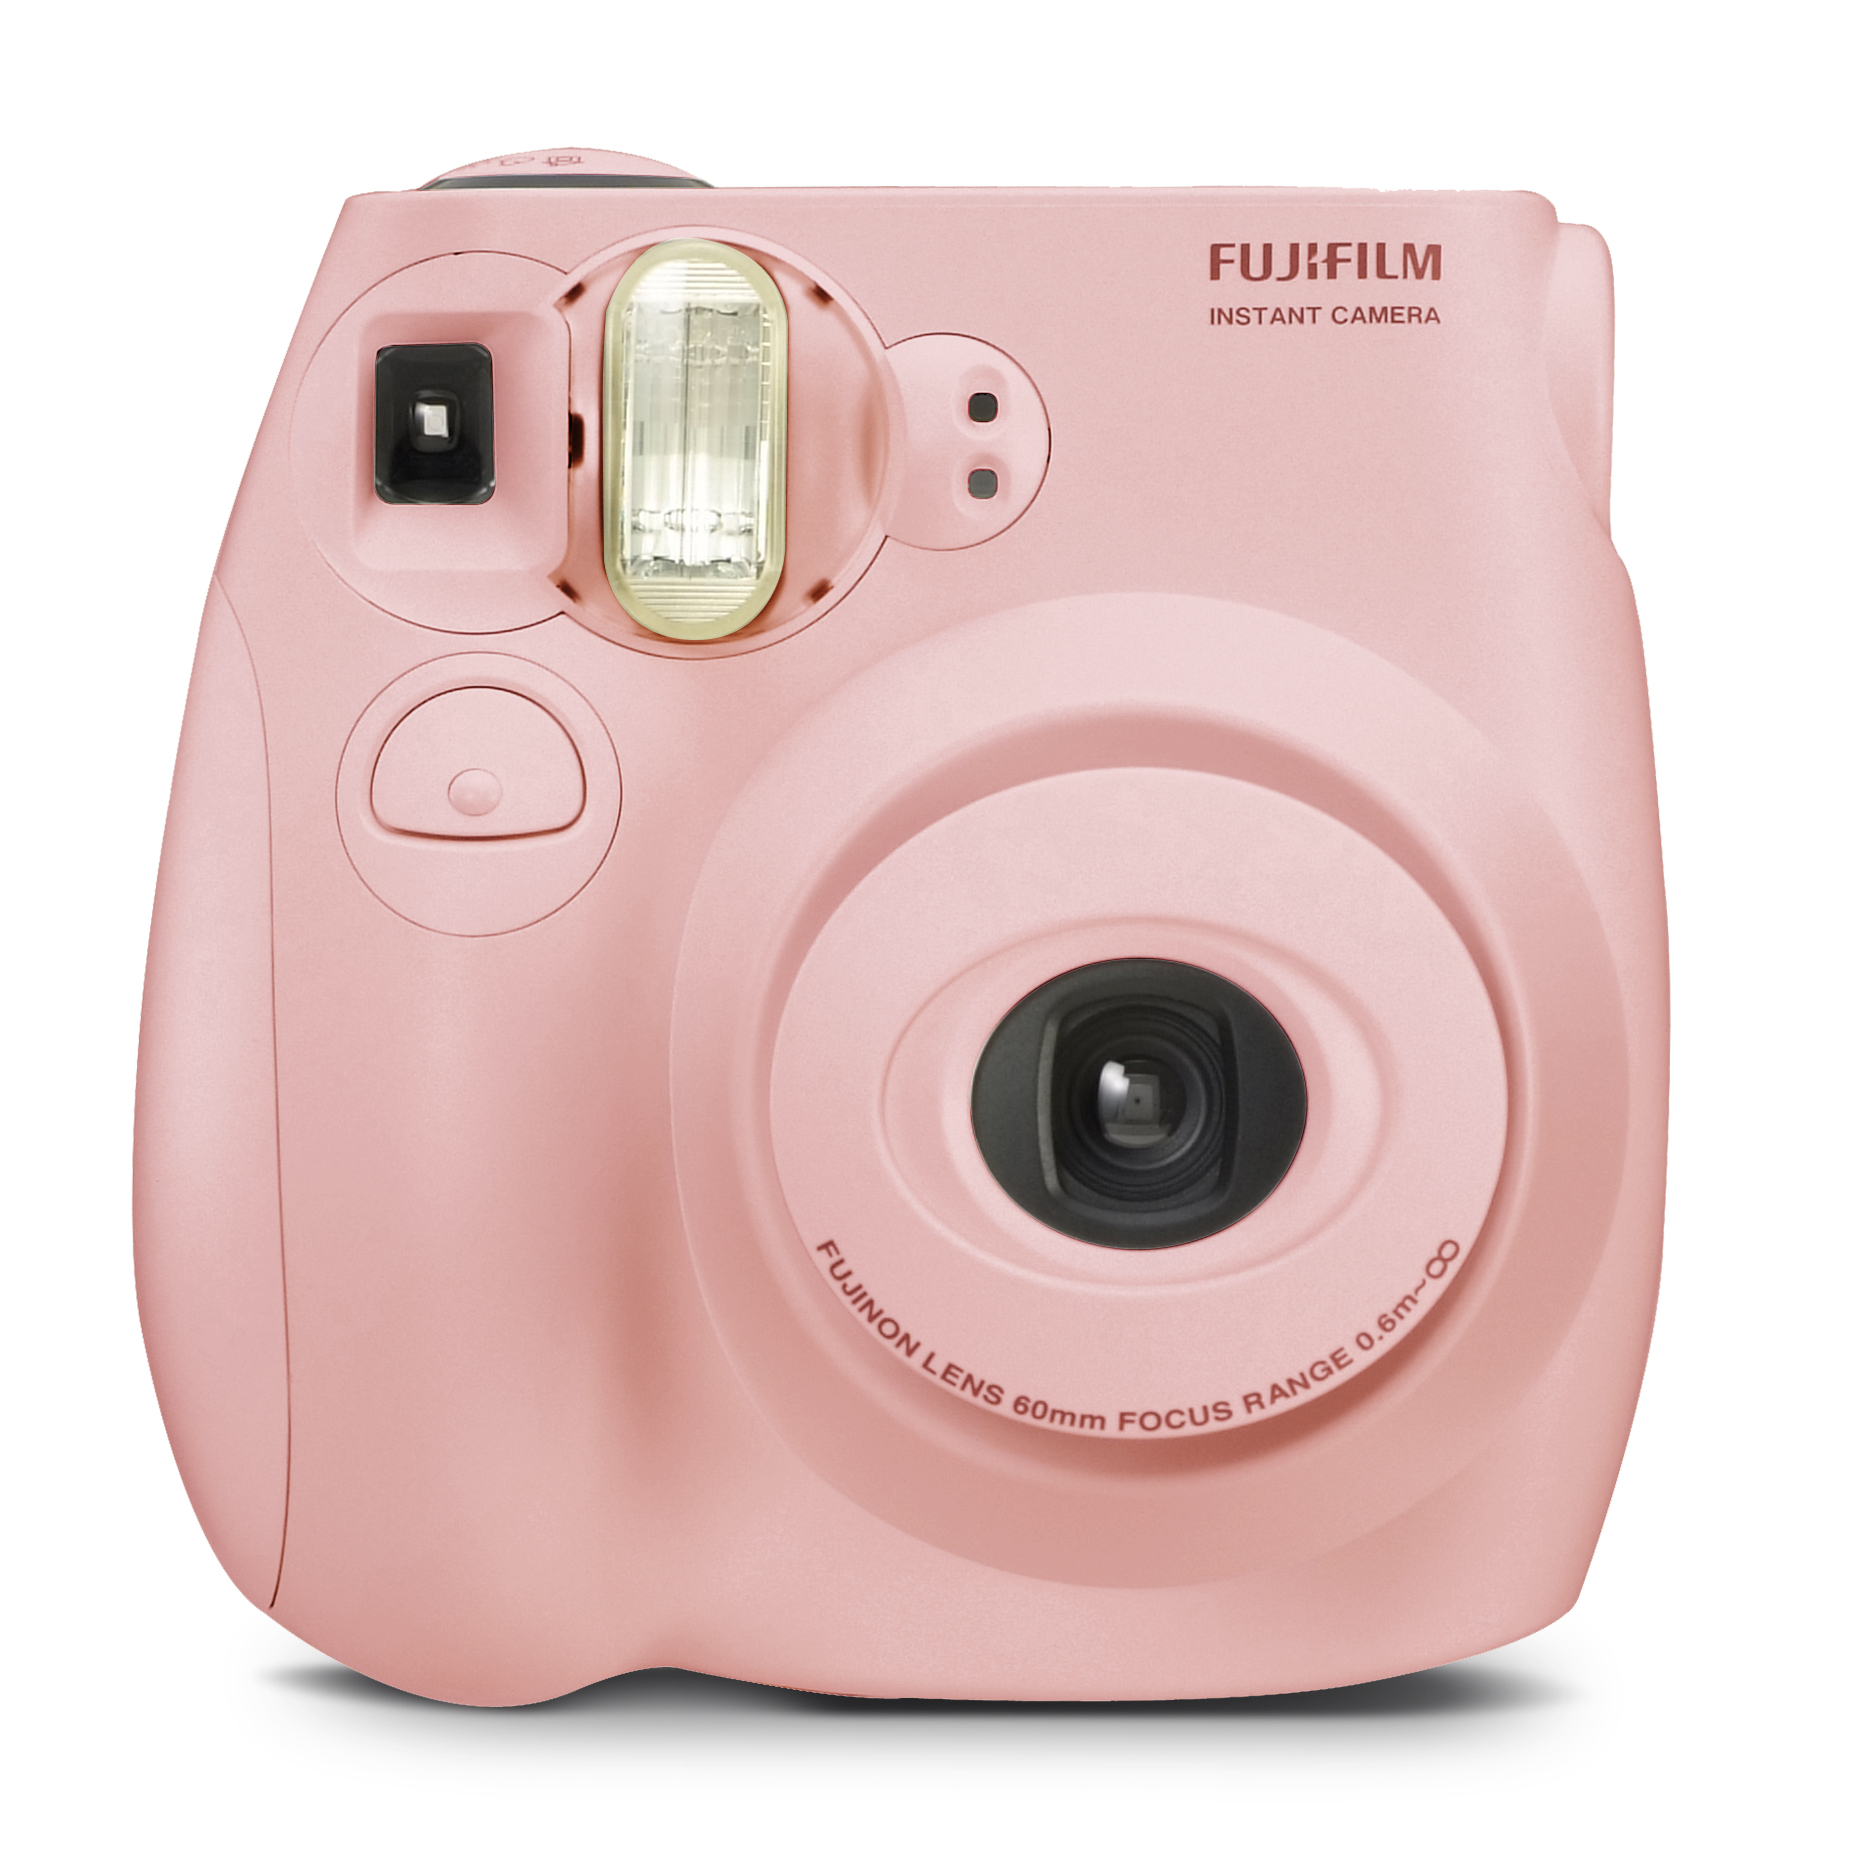 Fujifilm Instax Mini 7S Instant Camera (with 10-pack film) - Pastel Pink